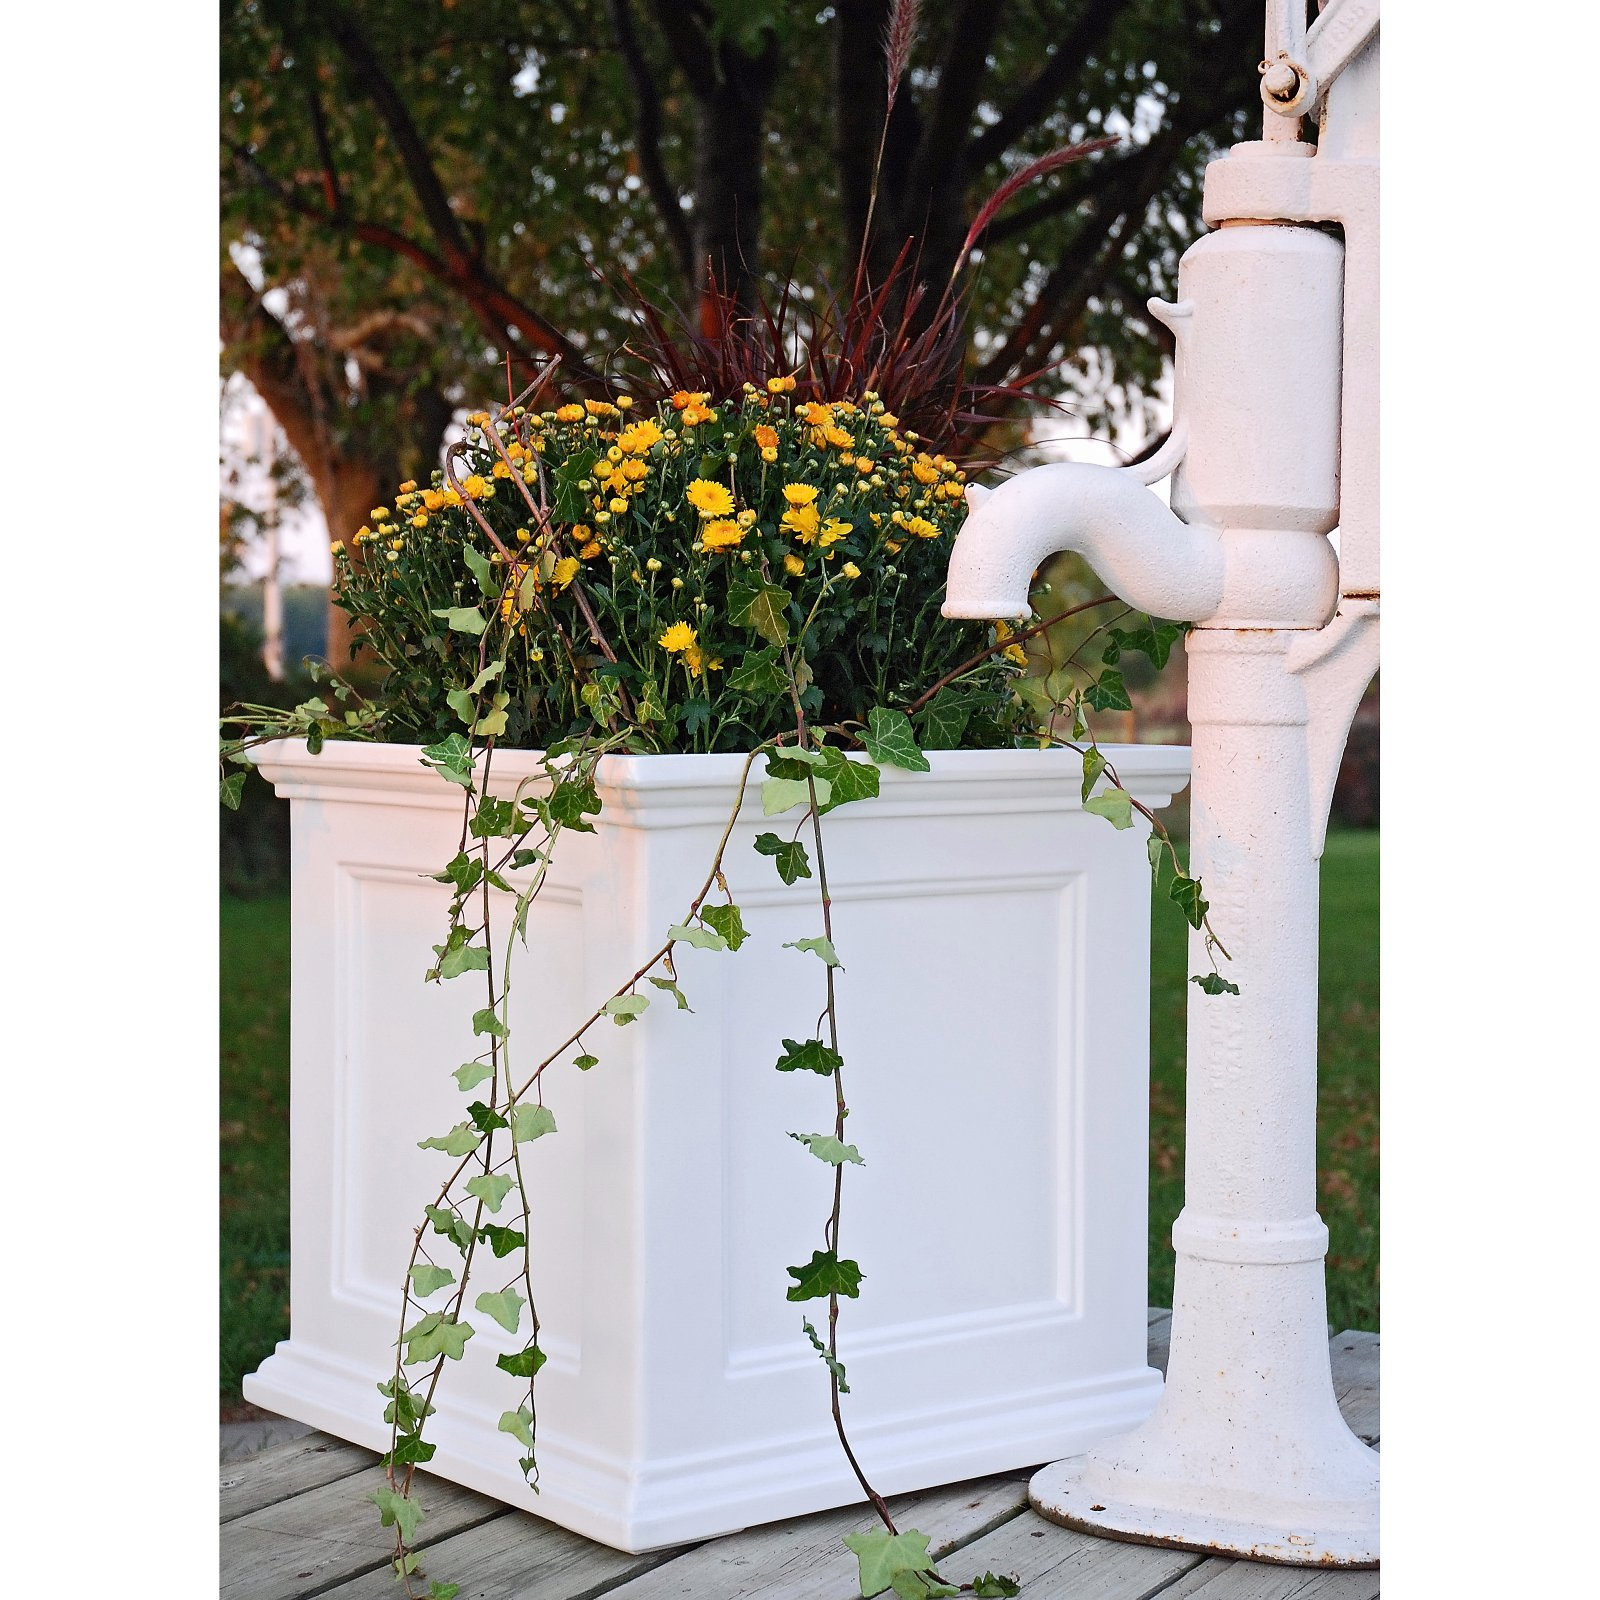 Fairfield Patio Planter 20x20 White by Mayne Inc.